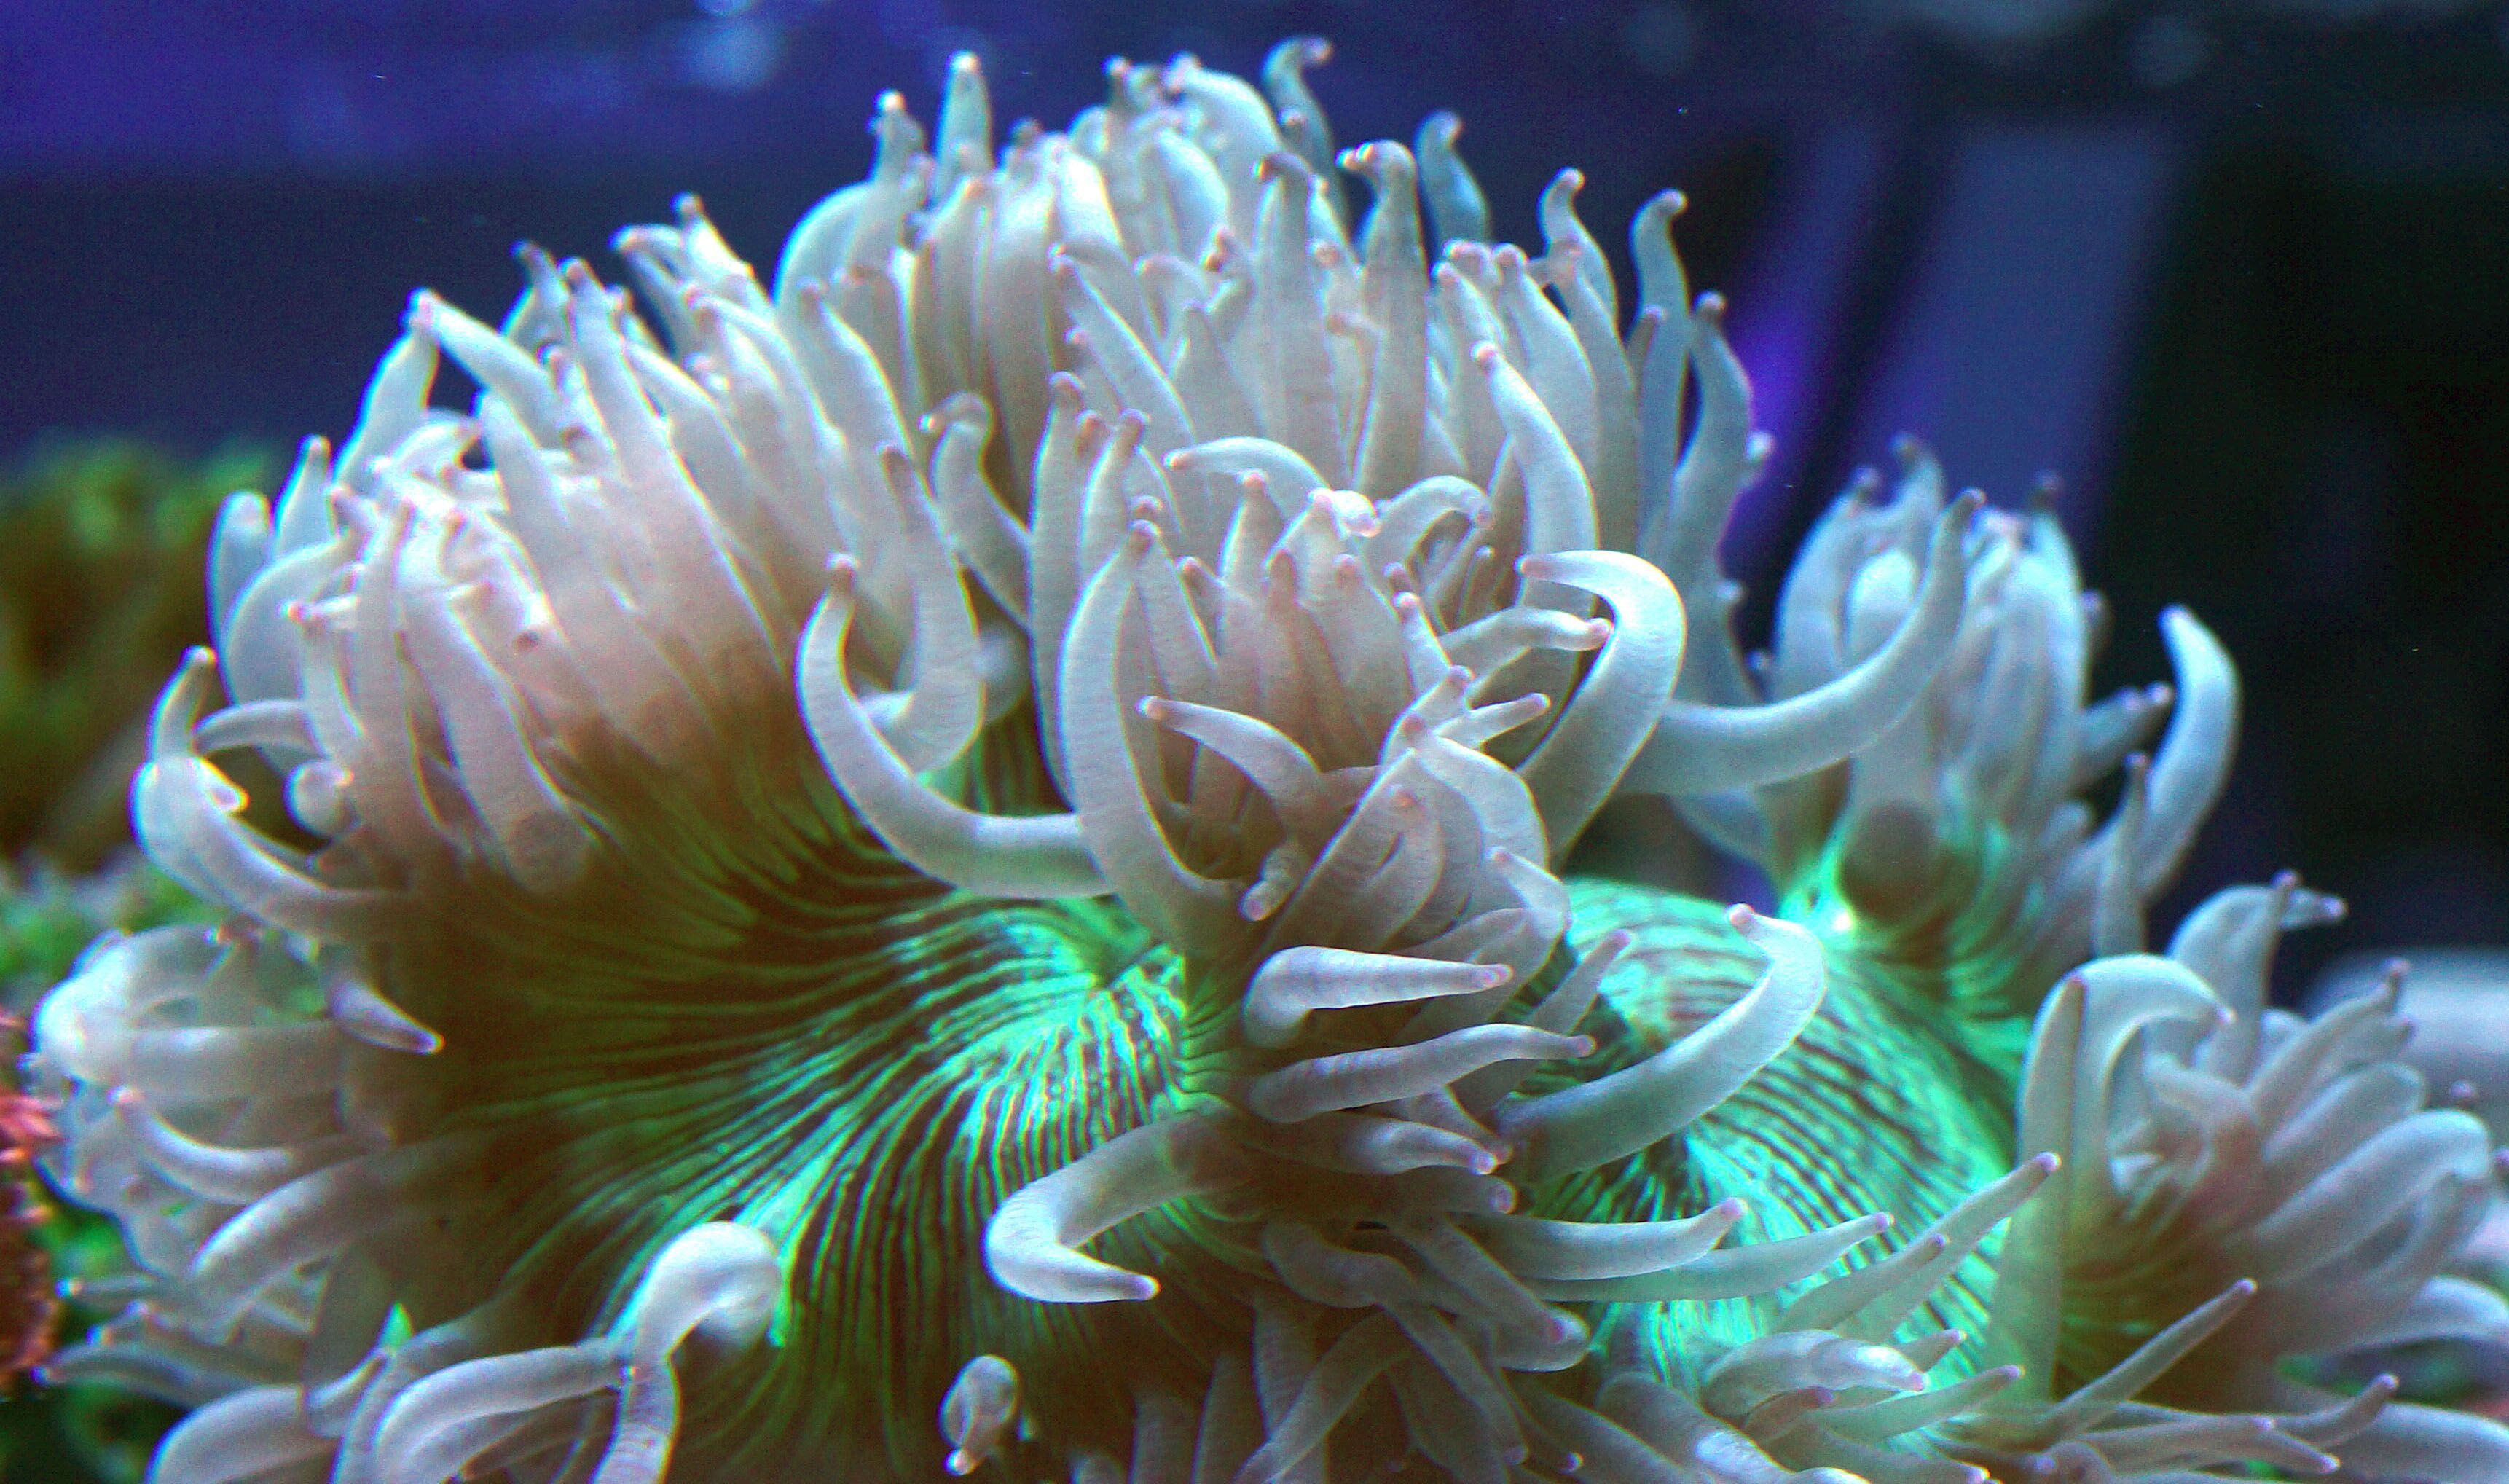 Wwwreefcornercom Category Lps Large Polyp Stony Common Name